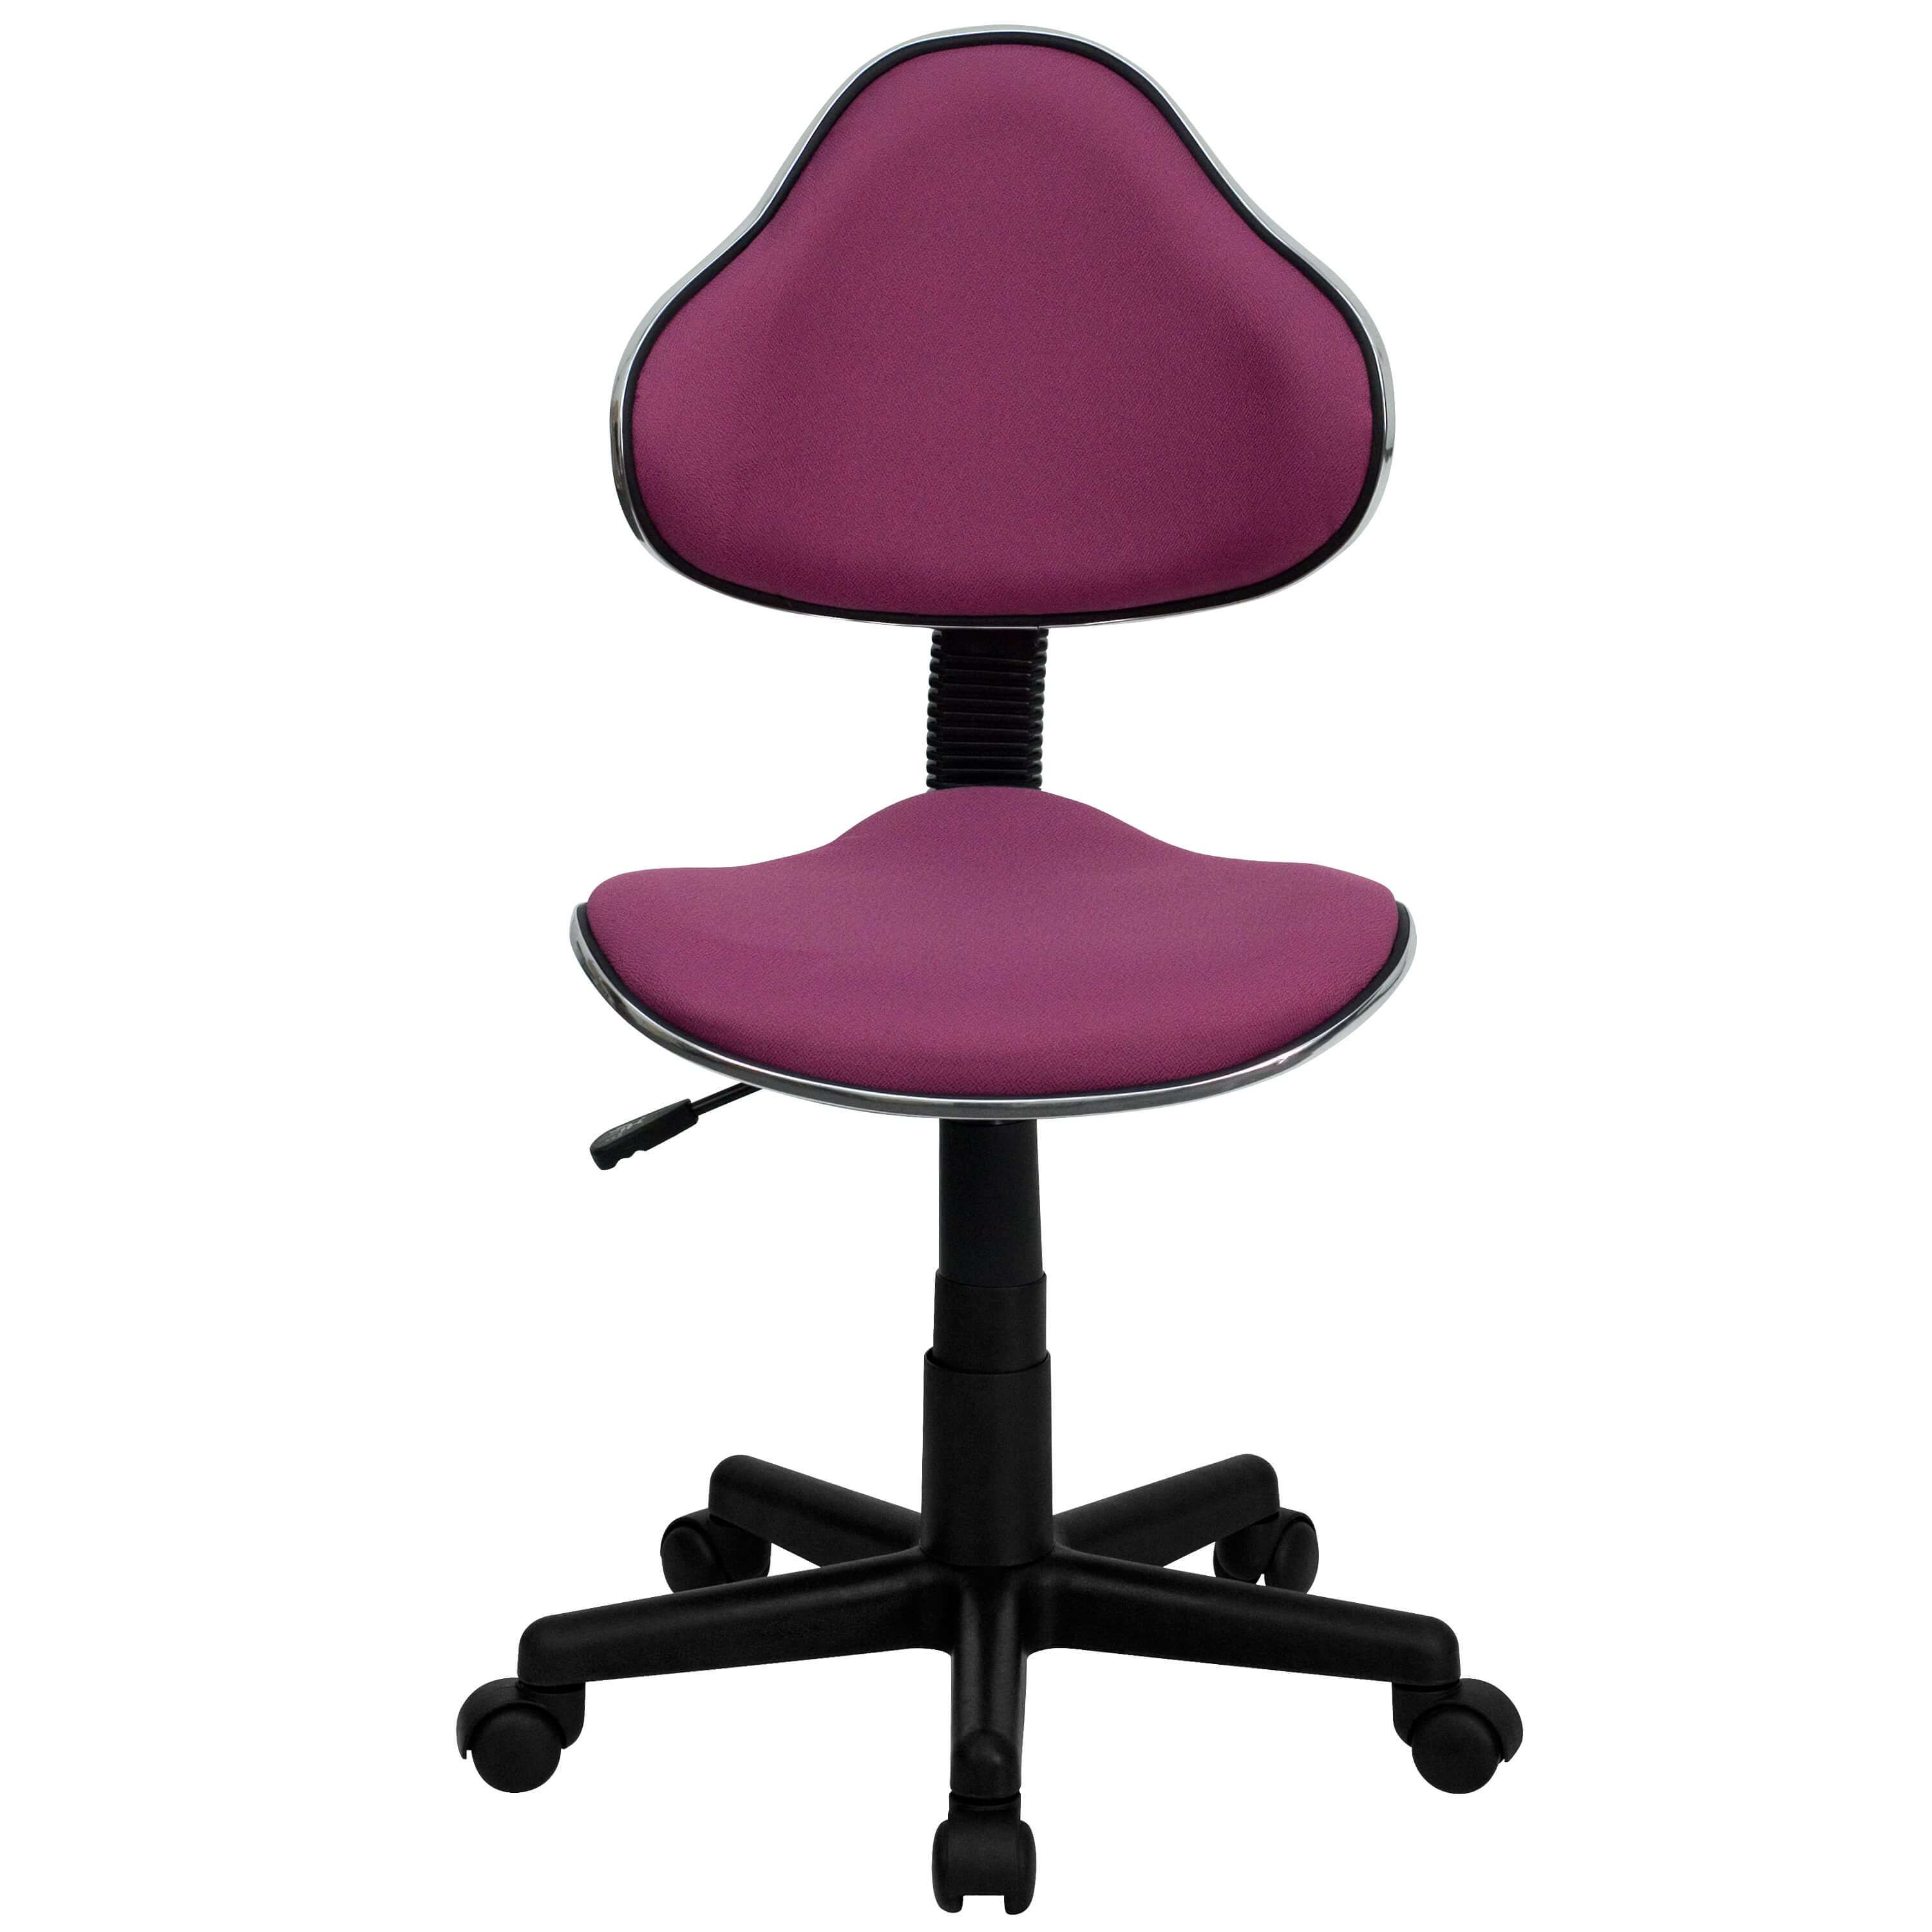 Colorful desk chairs CUB BT 699 LAVENDER GG FLA